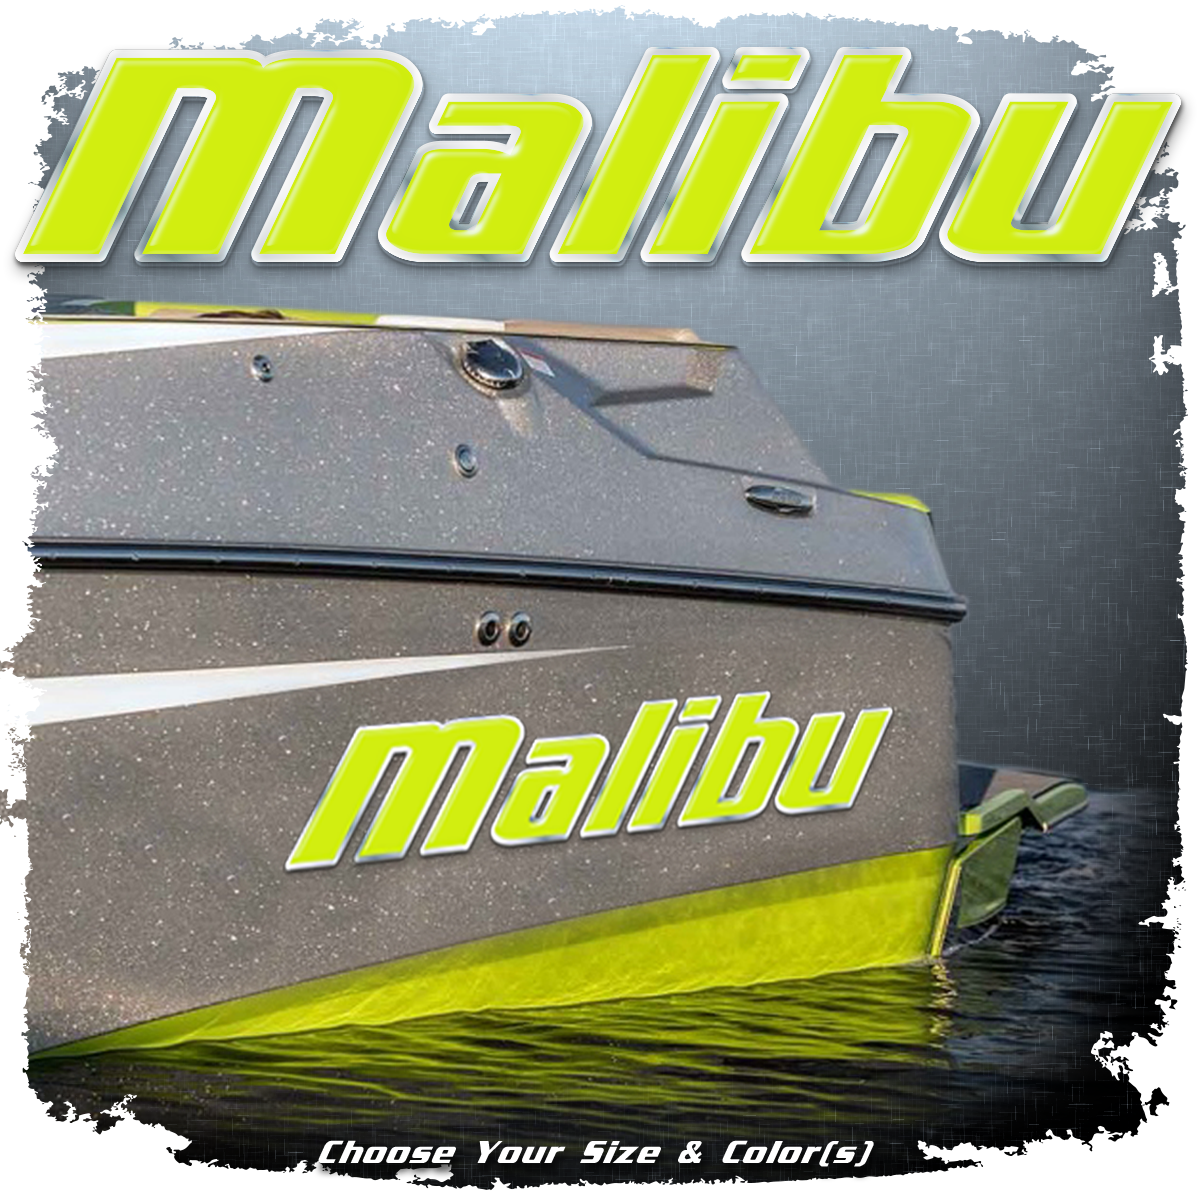 Domed Malibu Decal, New Logo, Choose Your Size & Color (1 Decal Included)